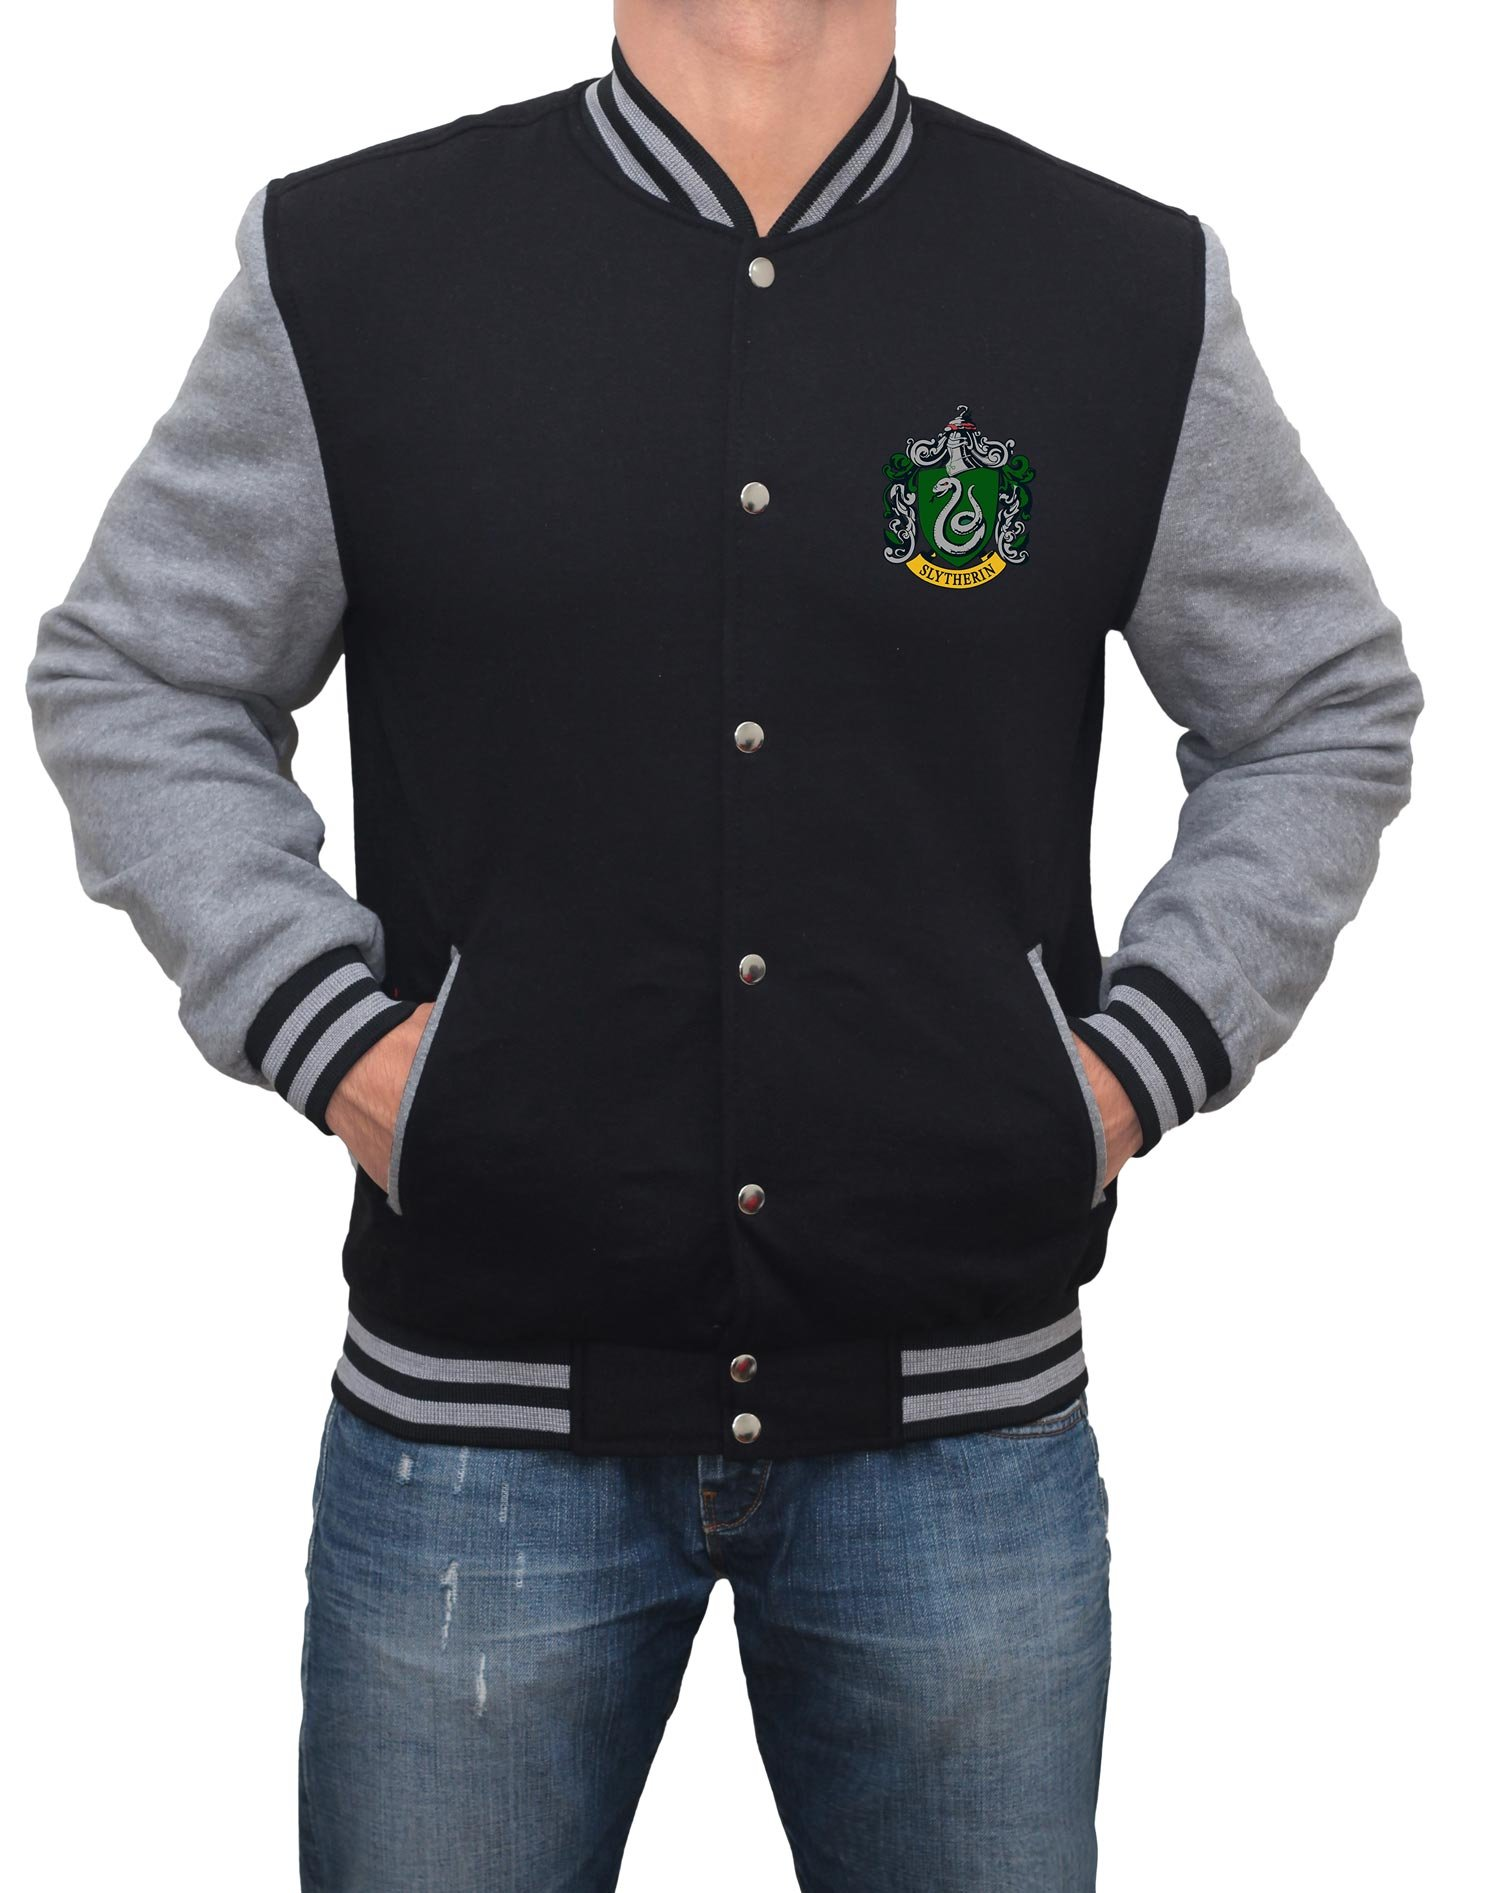 Decrum Slytherin Harry Potter Jacket - Mens Varsity Jacket | XL